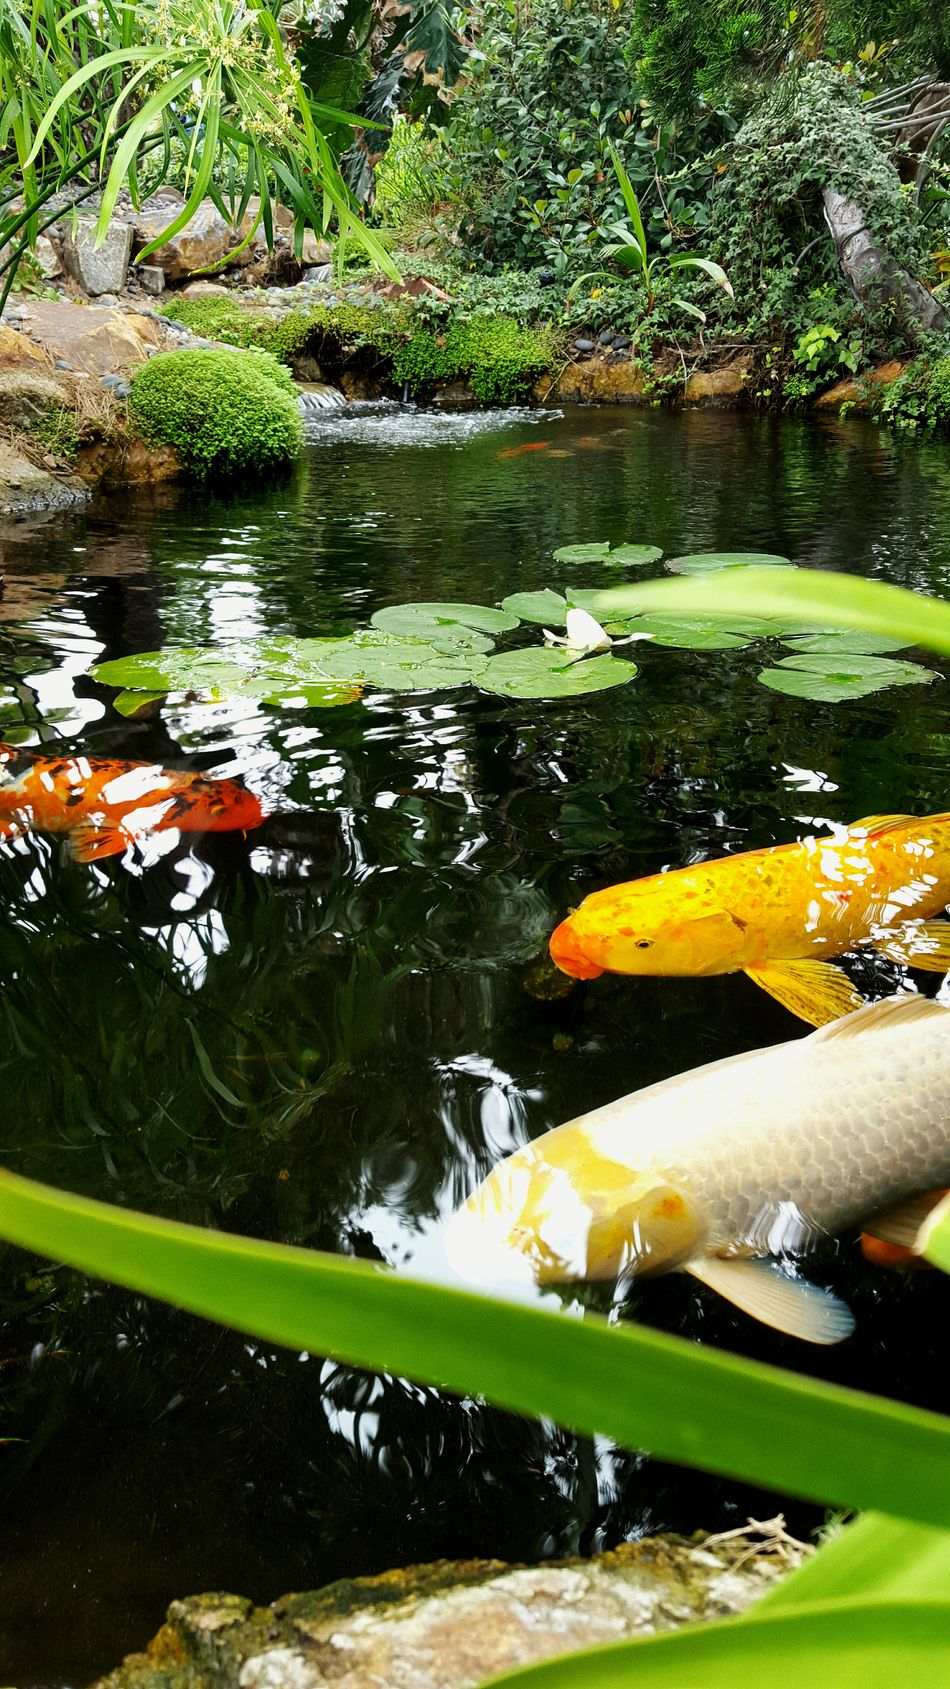 Just watching traffic go by. Koi Pond Selfrealizationgarden Encinitas Fish Sunday Colorsplash Water Lillies